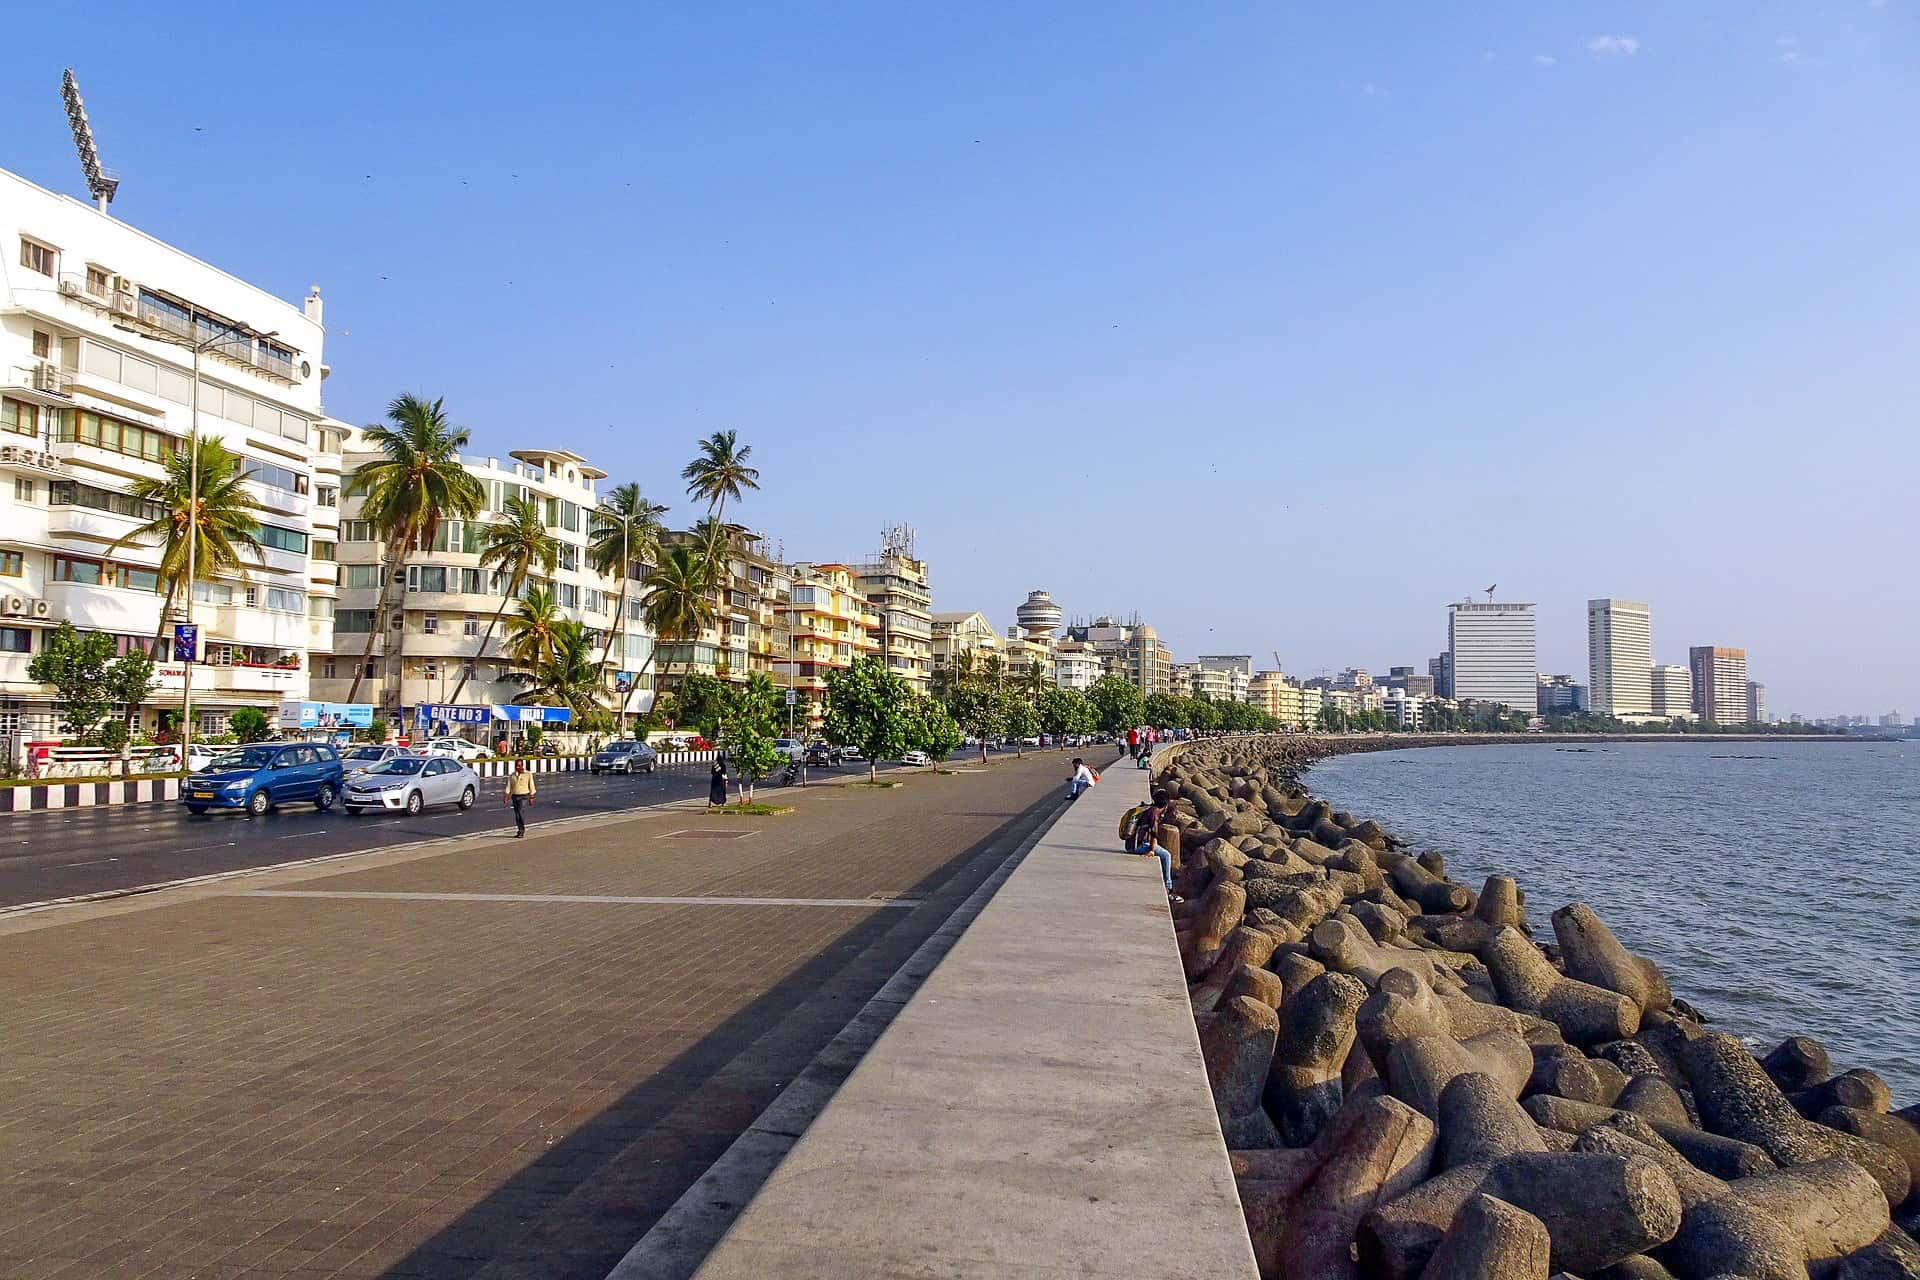 Marine Drive Queen Necklace in Mumbai